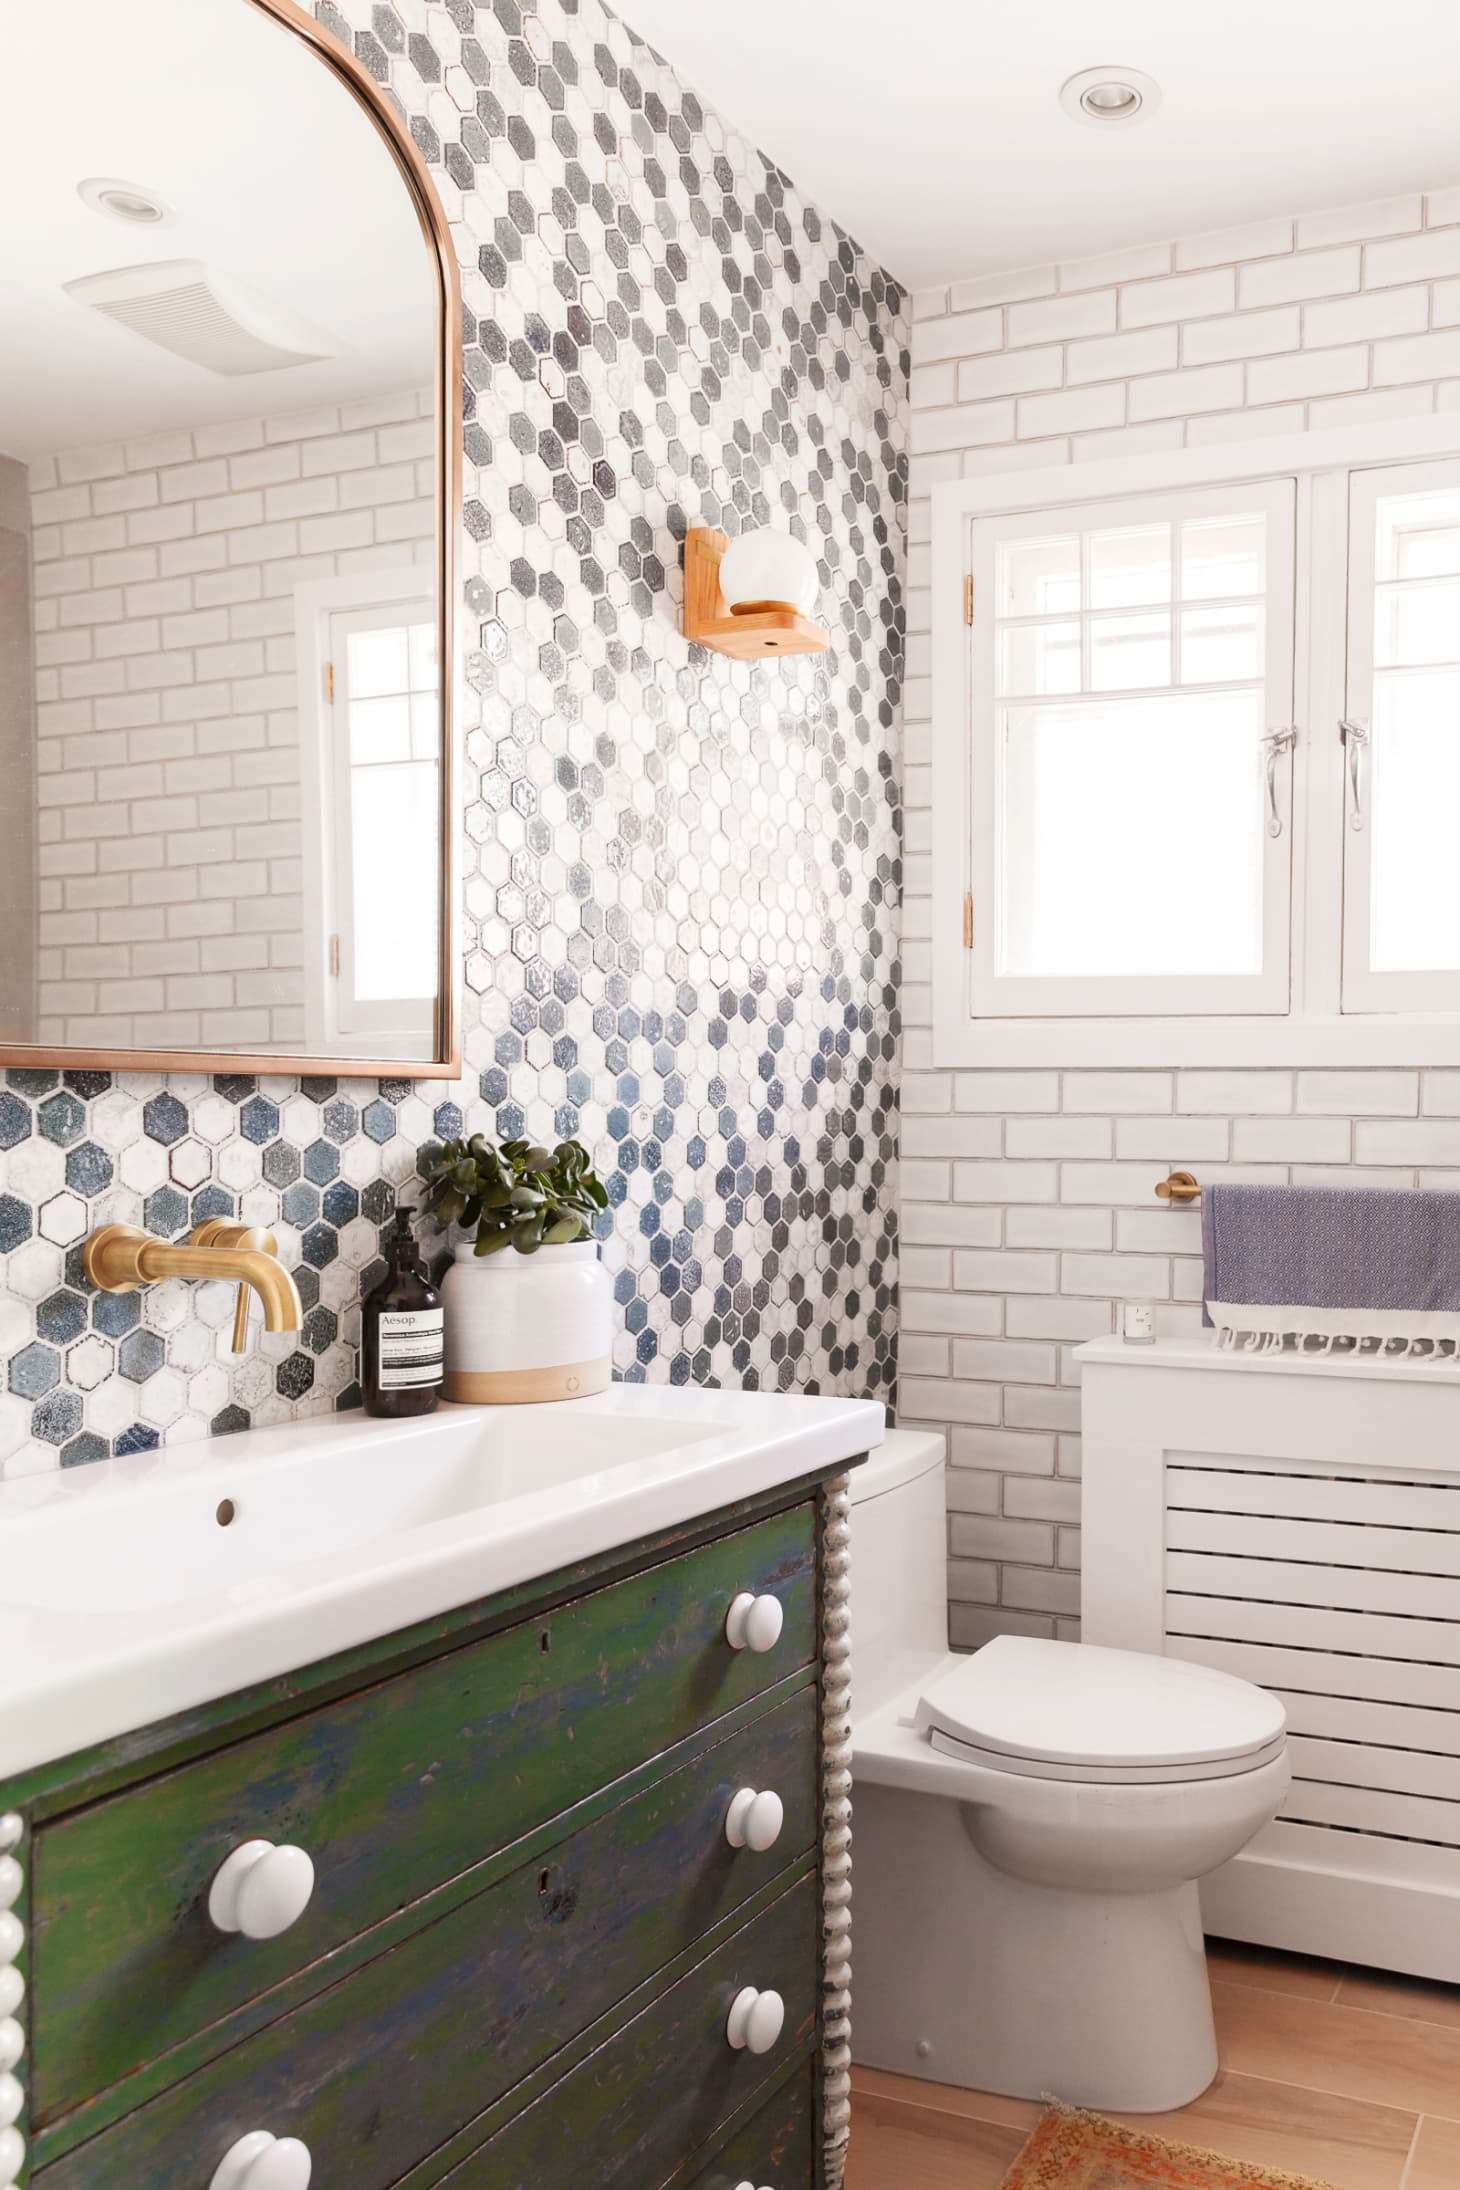 Ways to Decorate Your Bathroom Luxury the Best Decorating Ideas for Your Bathroom Walls